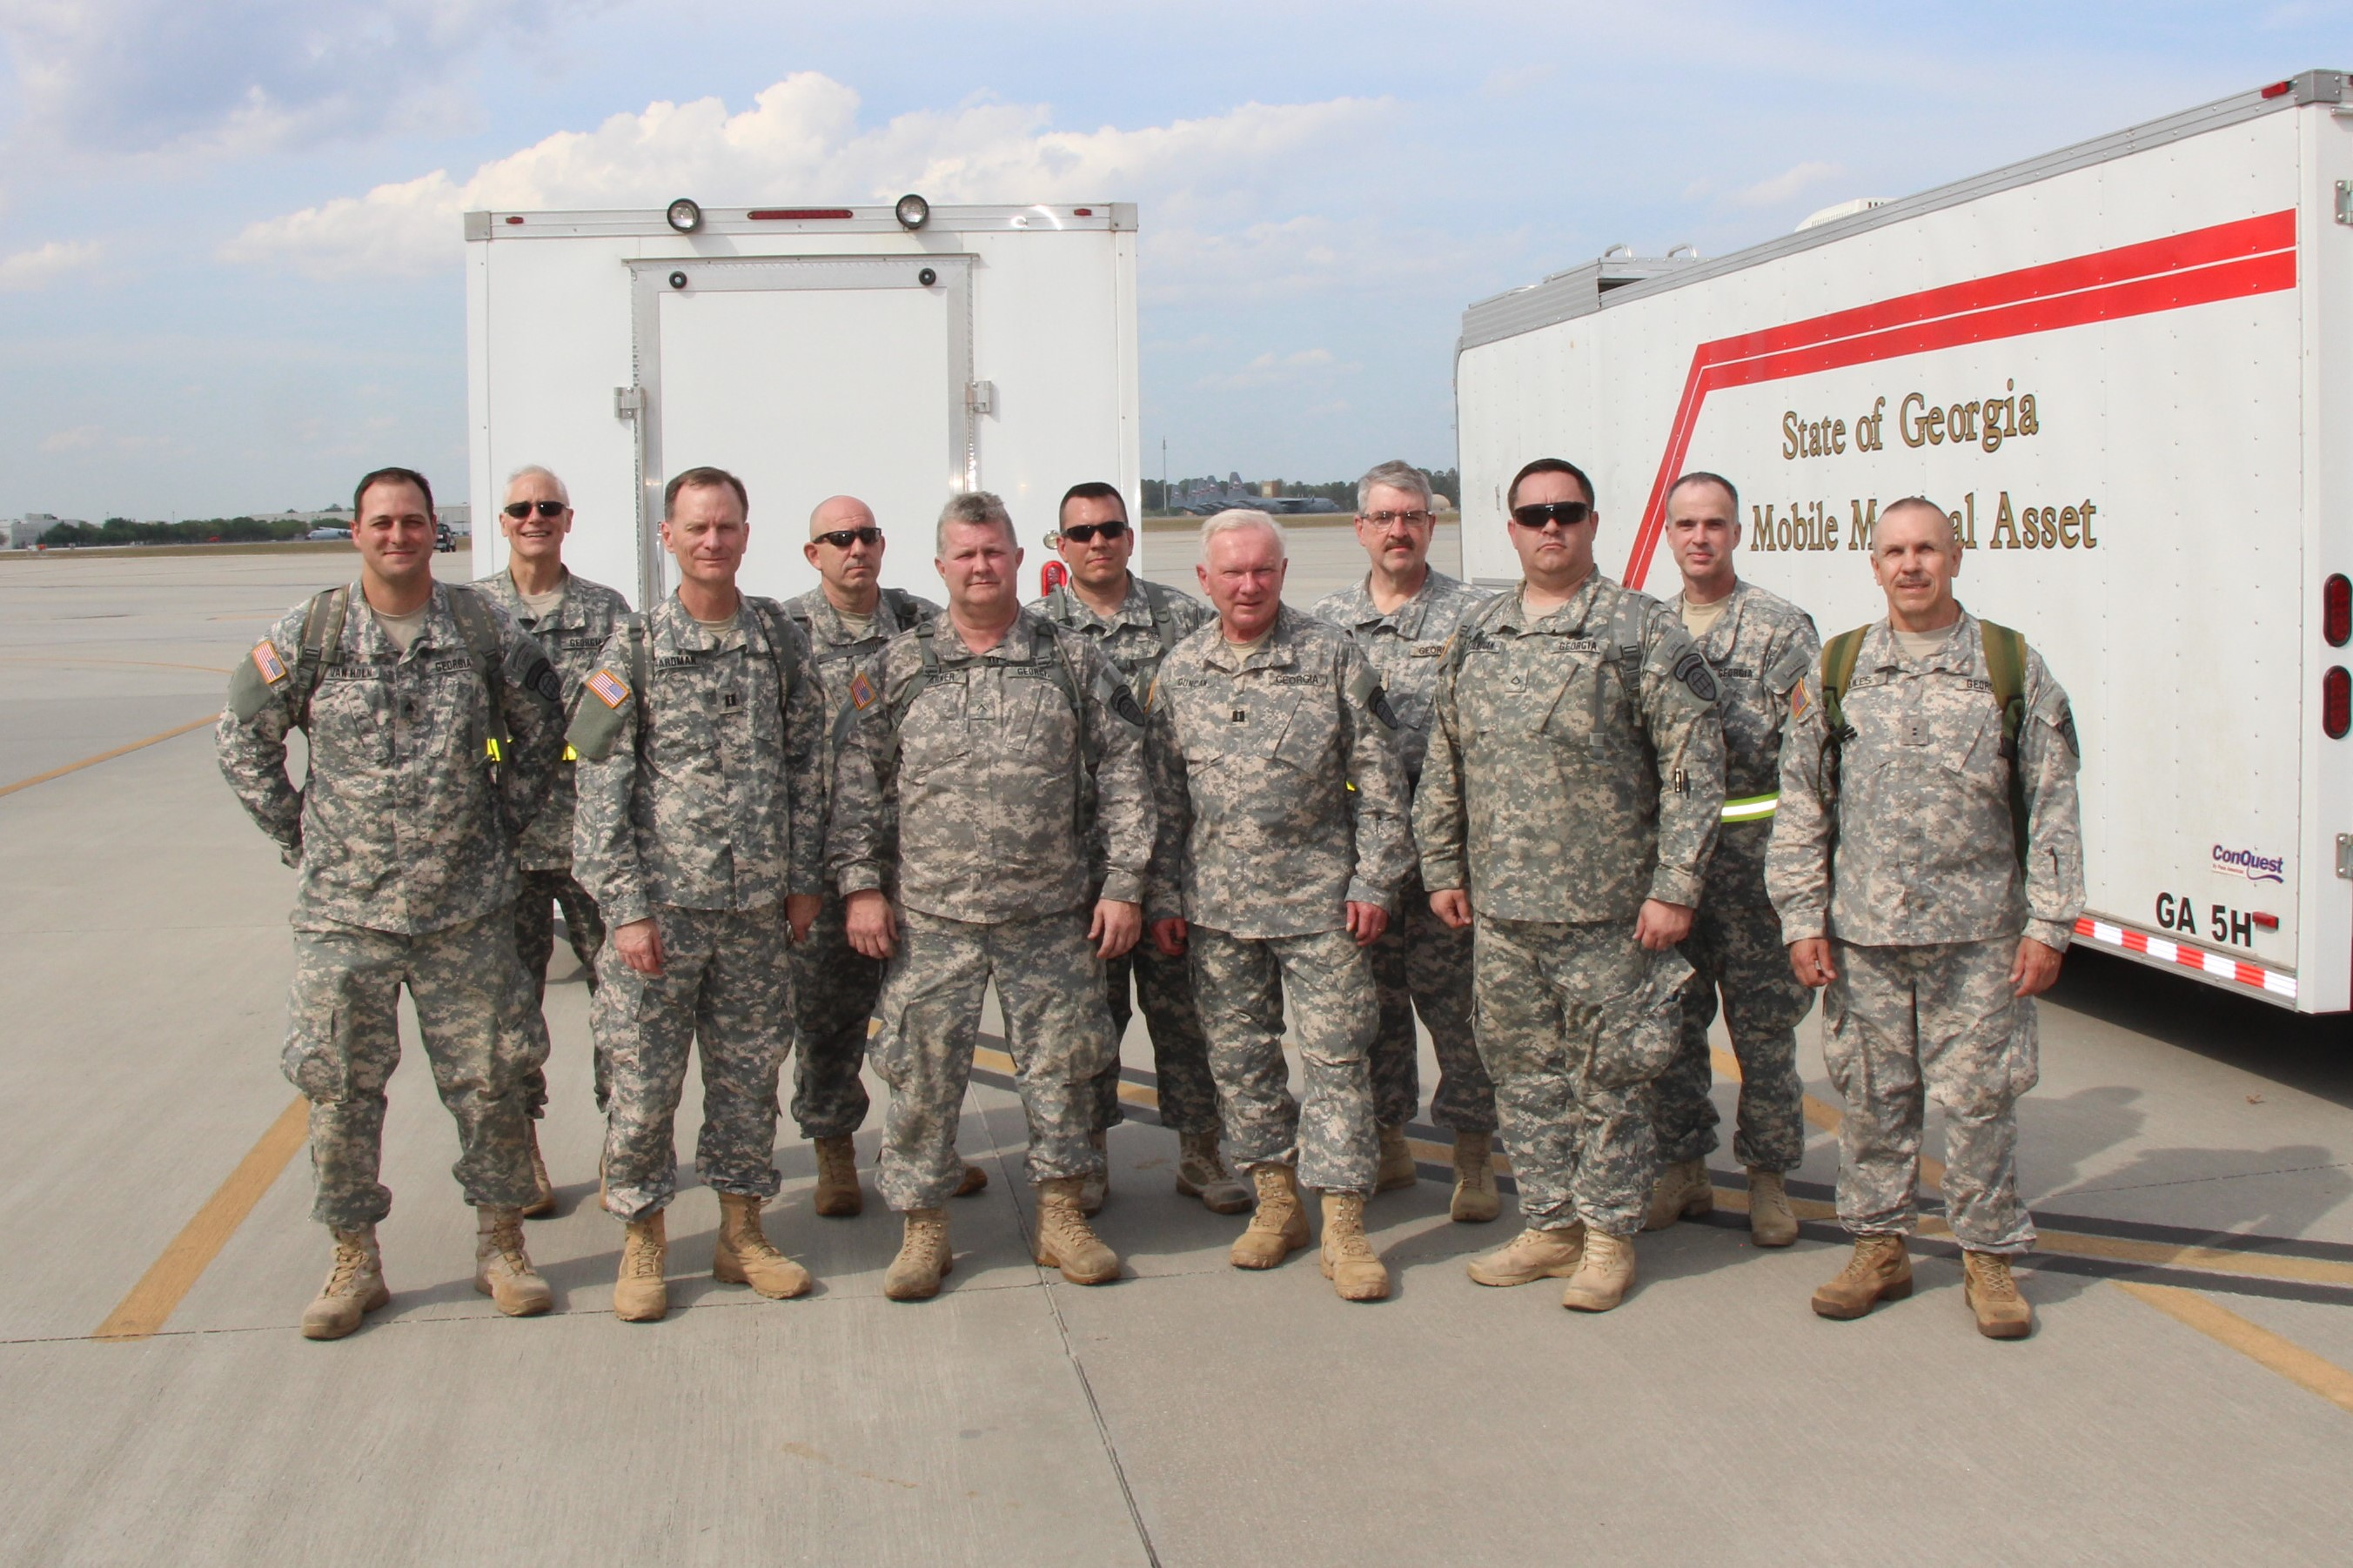 GA SDF Mobile Hospital Task Force at Air Dominance Center March 29, 2017, during the Vigilant Guard 2017 exercise March 29, 2017, at Air Dominance Center in Savannah, GA. Vigilant Guard 2017 Georgia is a multi-state multi-agency training exercise, sponsored by U.S. Northern Command, in collaboration with the National Guard Bureau.  Georgia State Defense Force photo by Capt. Vadim Timchenko.